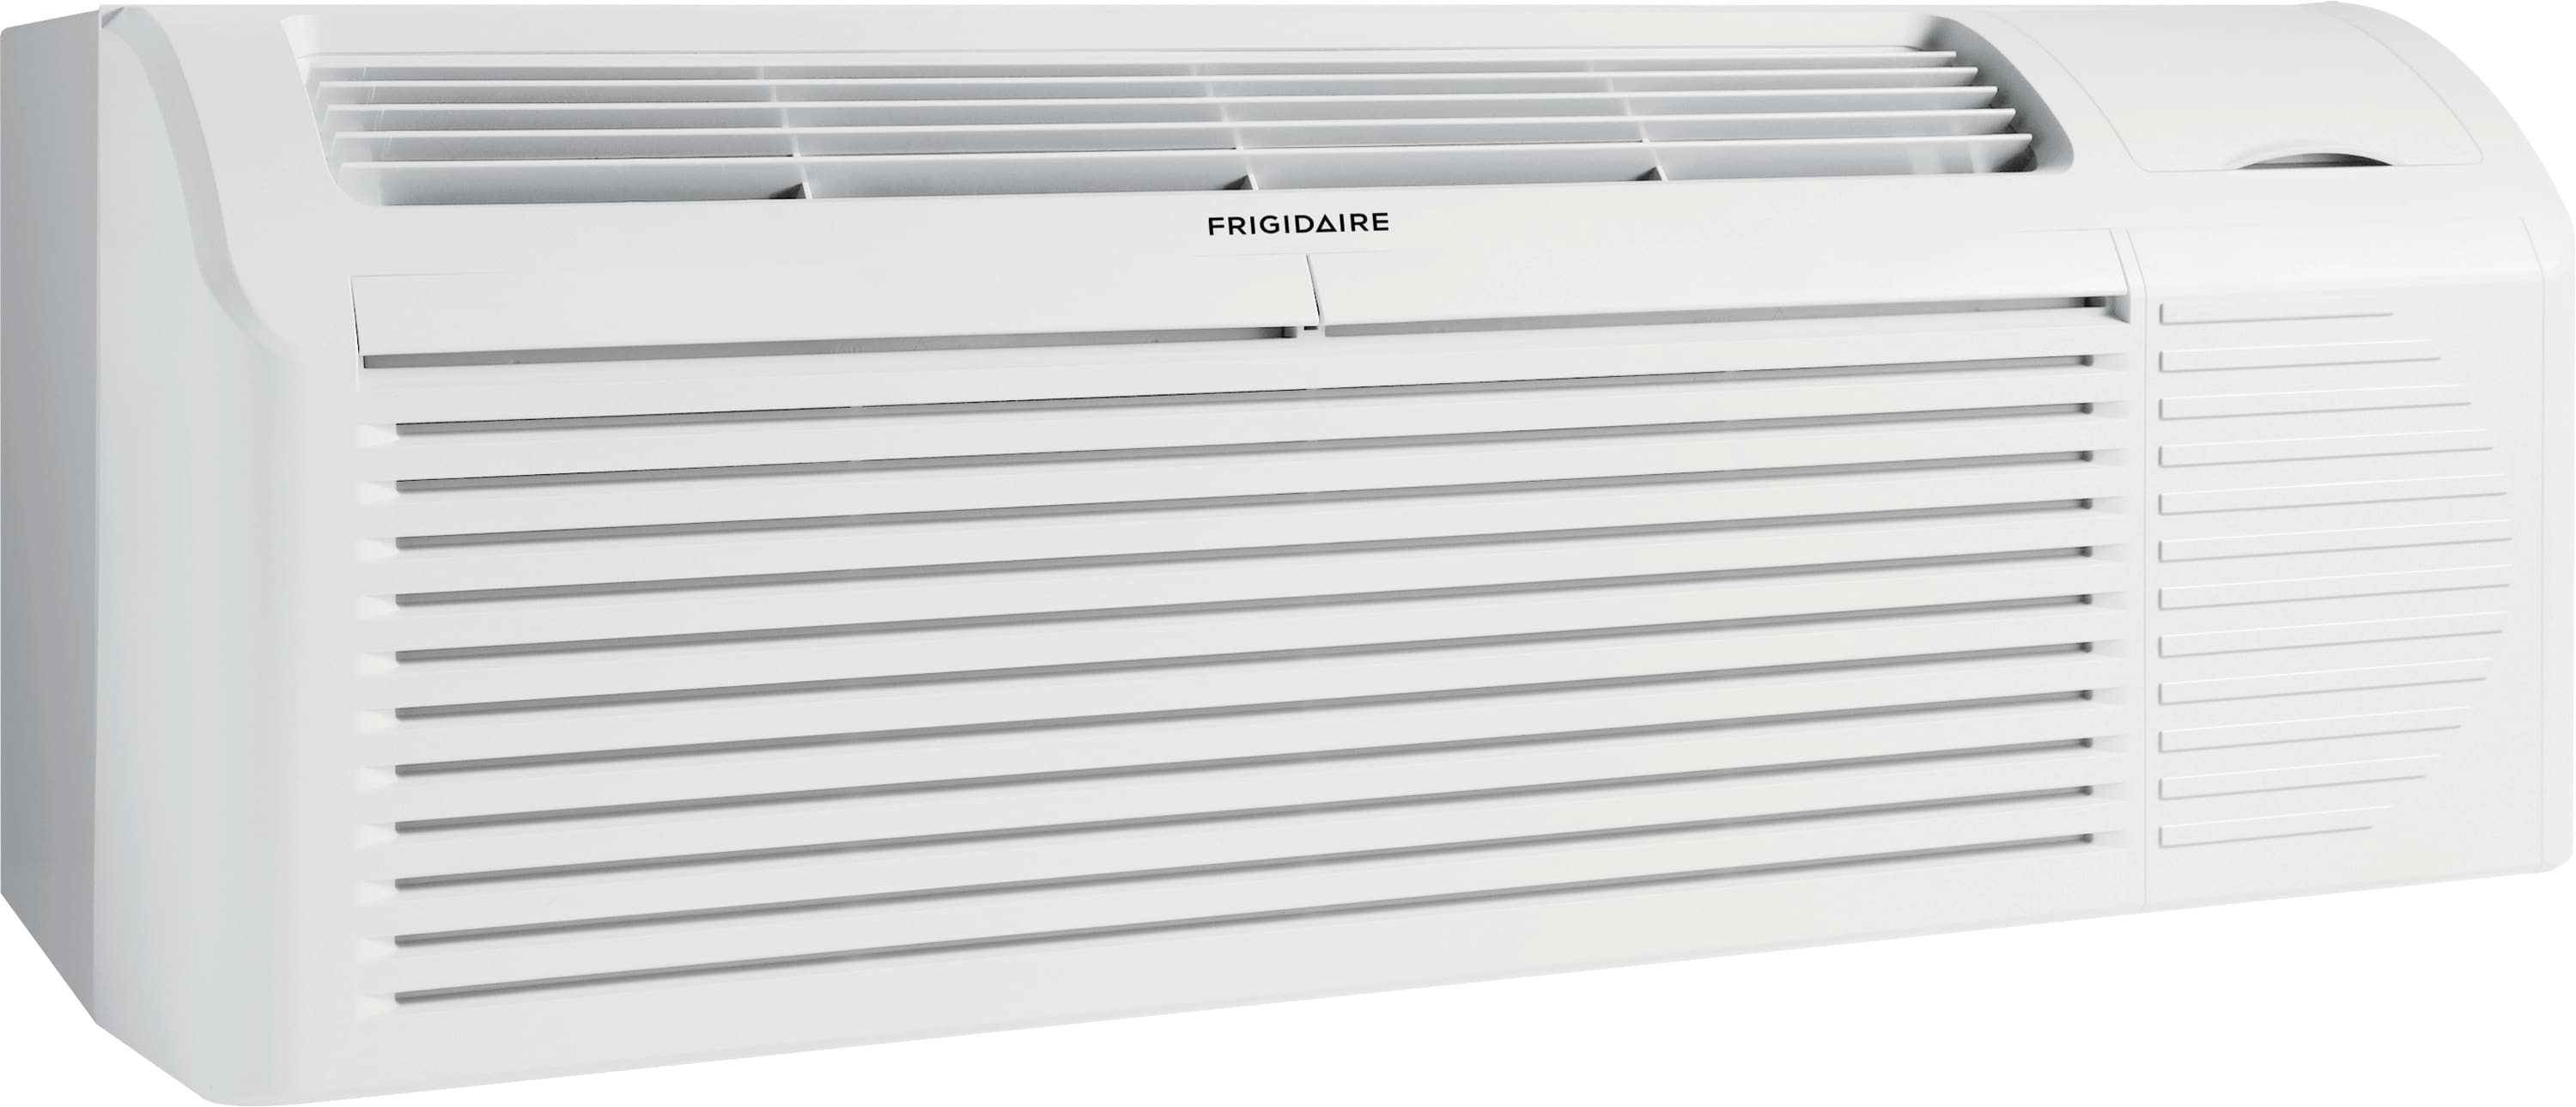 Model: FFRP092HT3 | PTAC unit with Heat Pump and Electric Heat backup 9,000 BTU 208/230V with Corrosion Guard and Dry Mode